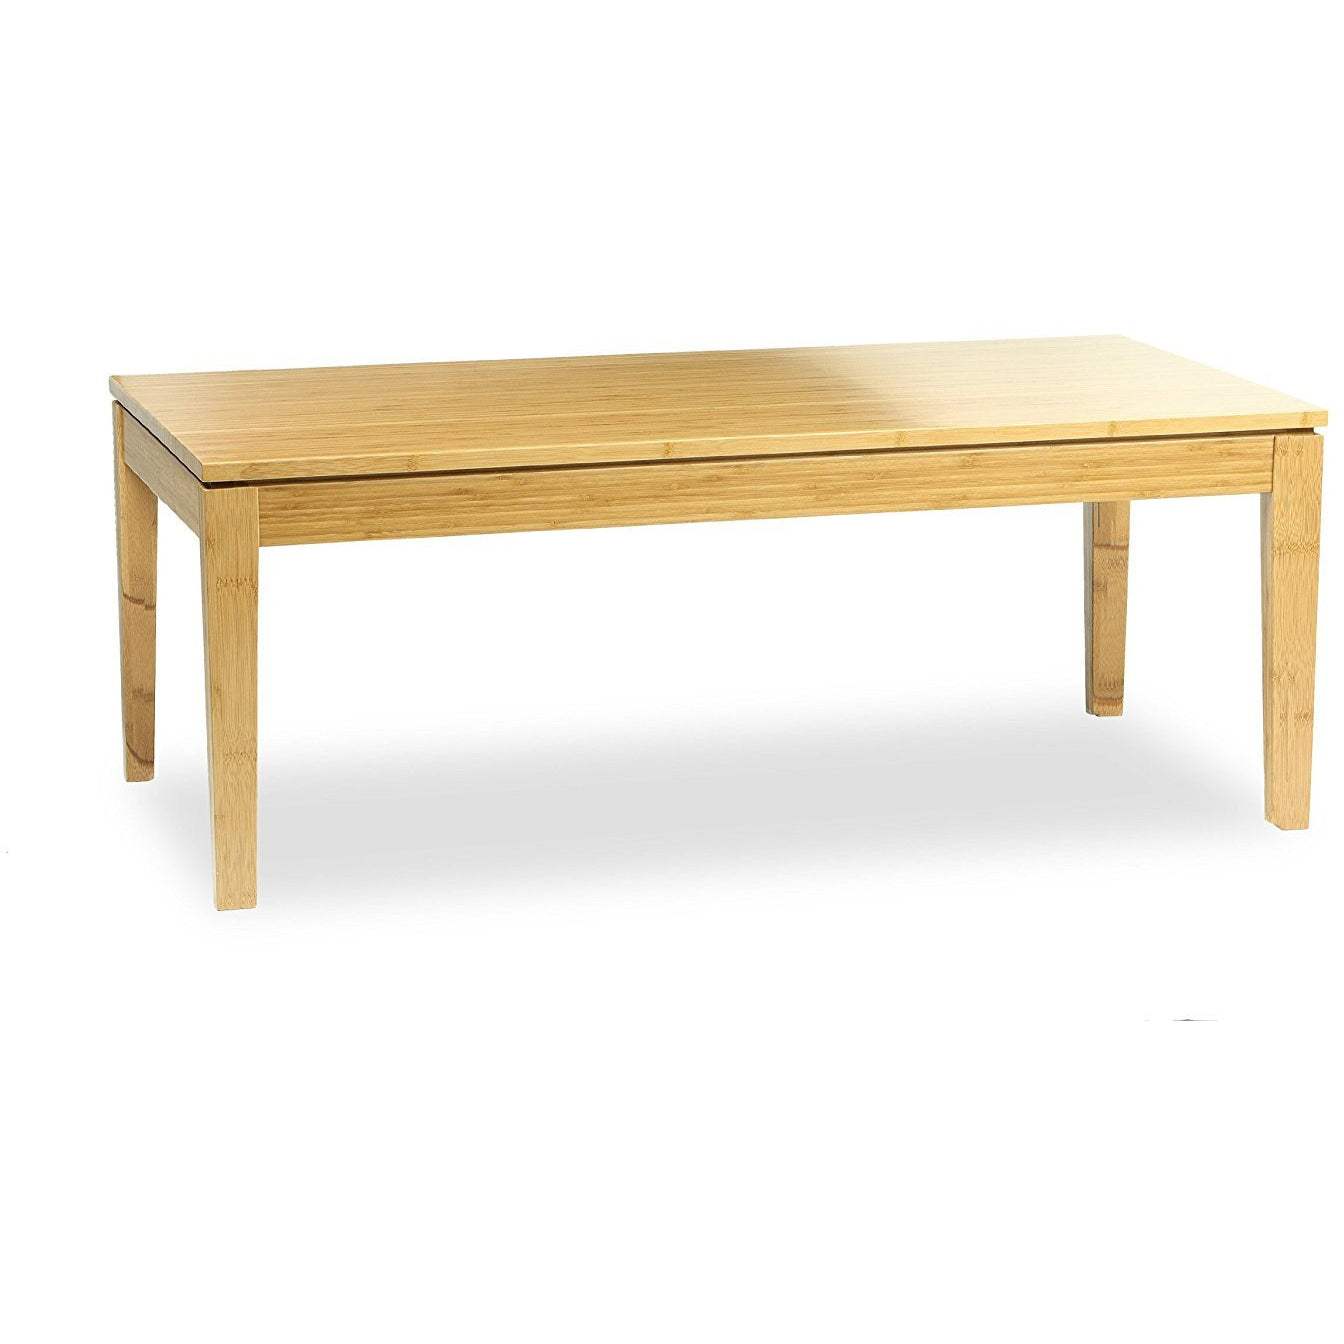 Bamboogle Brazil Bamboo Coffee Table in Honey 20-2244H-Minimal & Modern